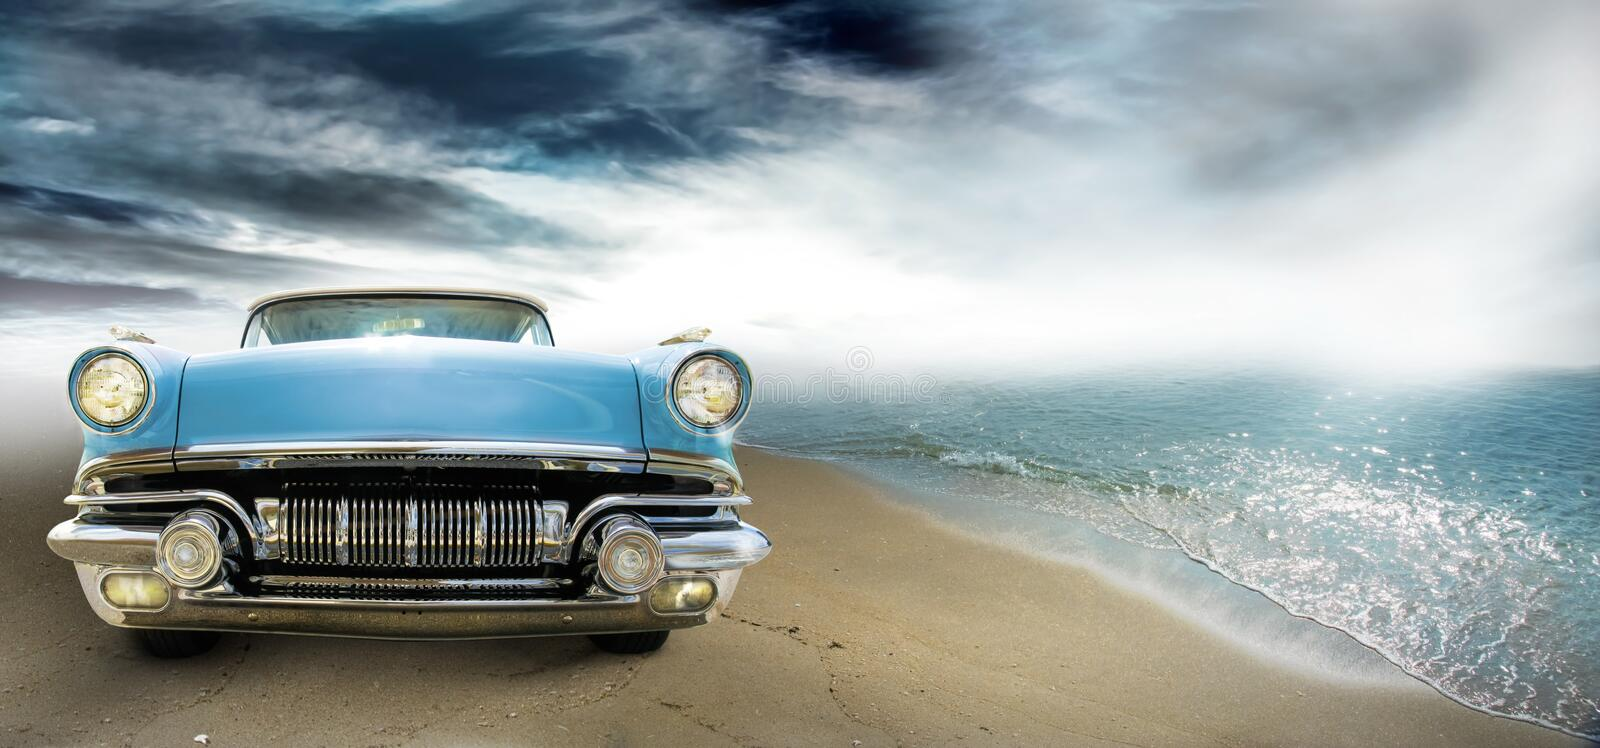 Download Vintage coupe stock photo. Image of waves, hazy, cloudy - 8747610